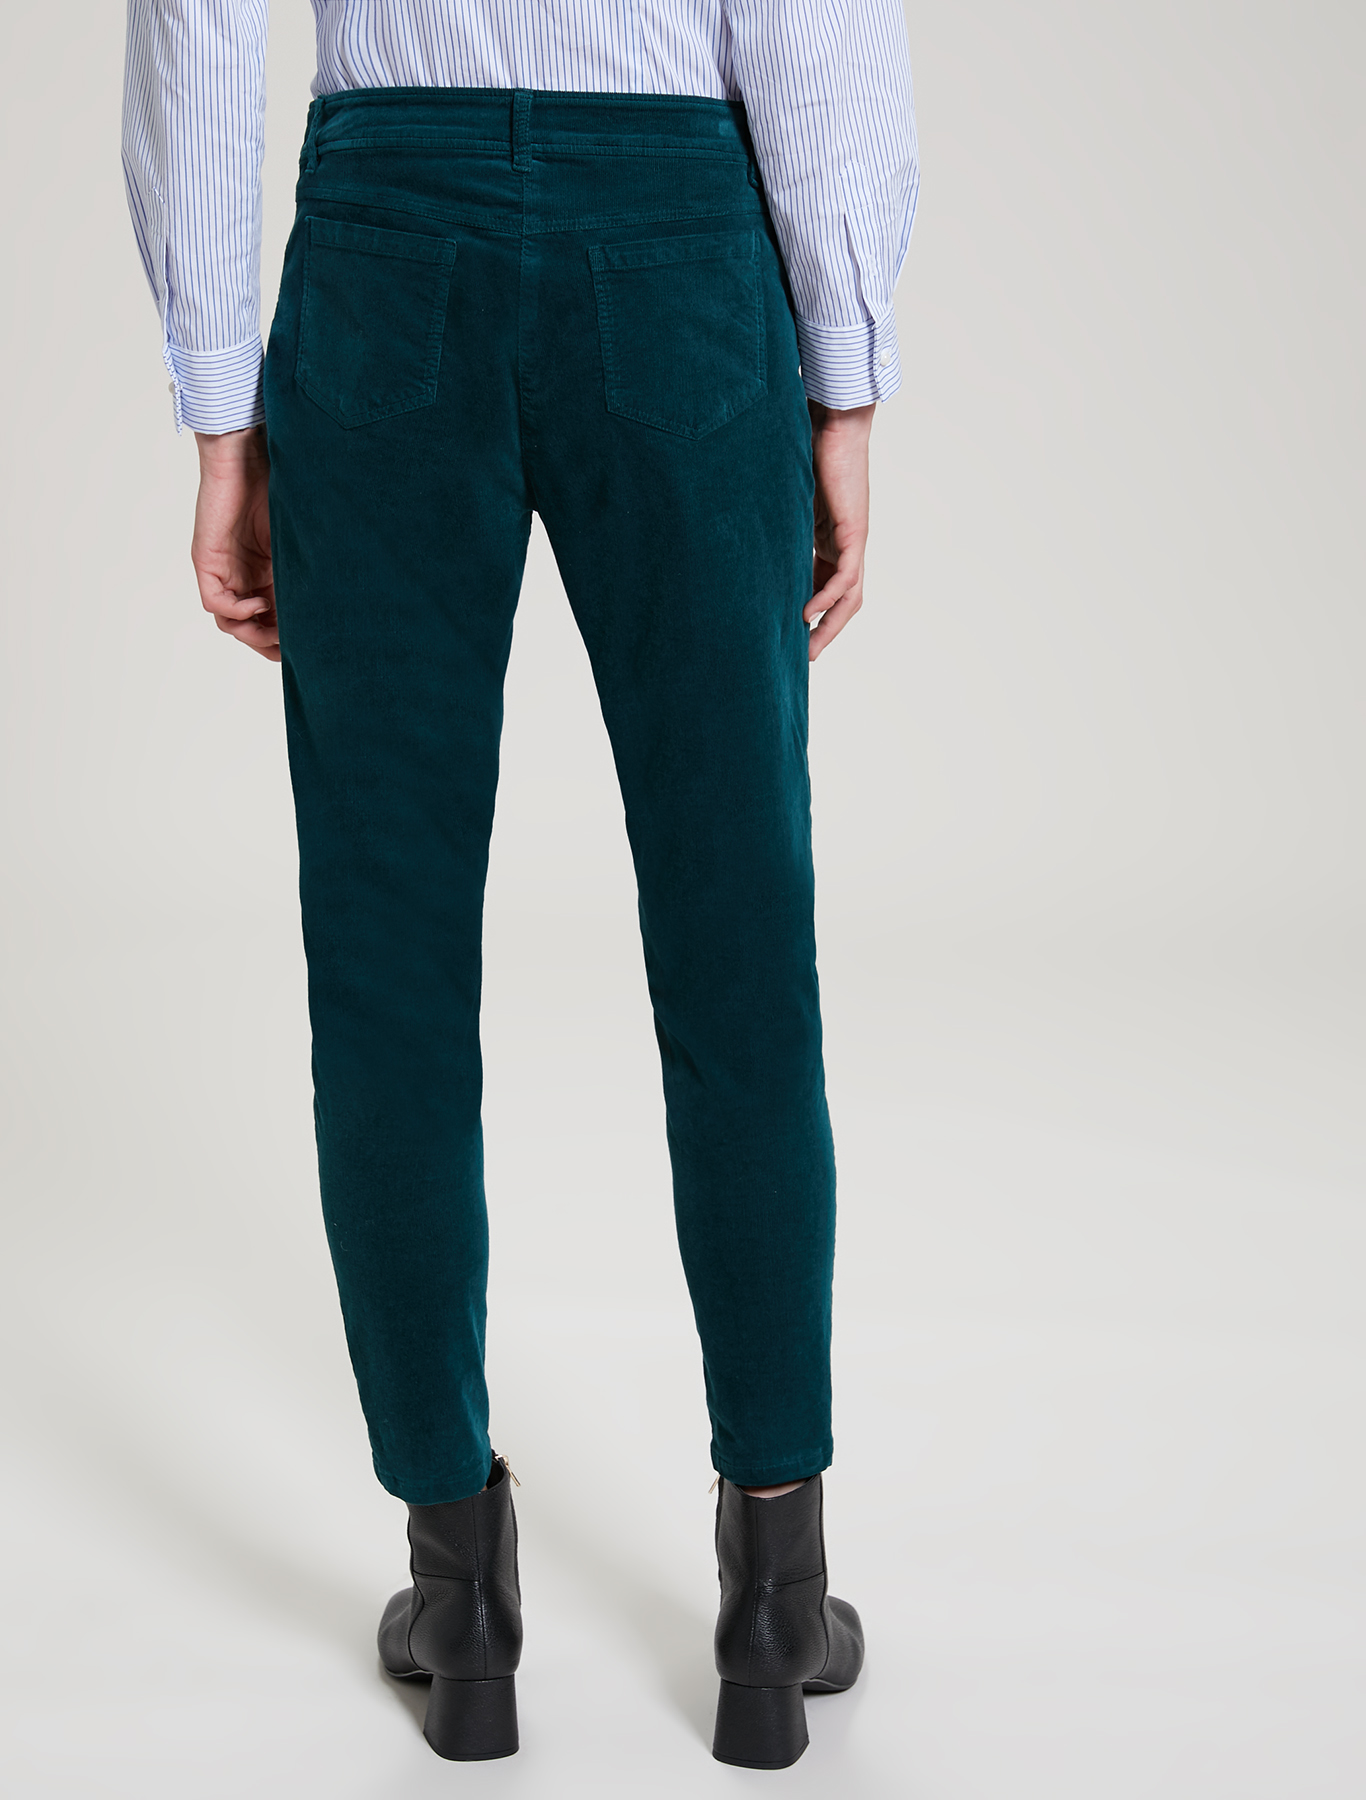 Ribbed velvet trousers - green - pennyblack